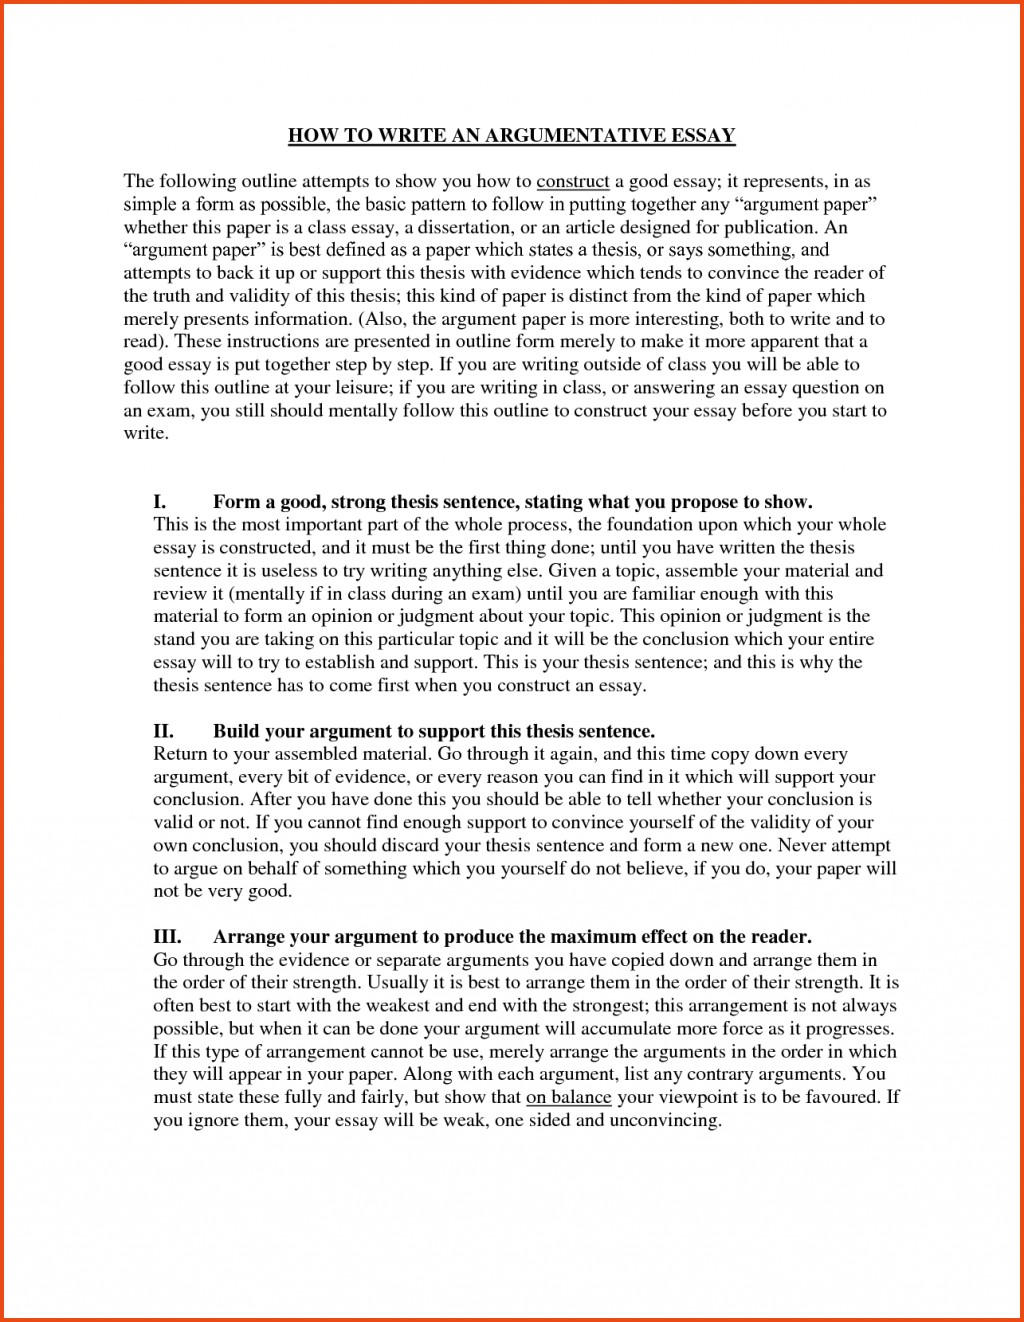 005 Essay Example How To Start An Brilliant Ideas Of Good Ways About Yourself Dissertation Nice Amazing Can I A Book Observation Examples With Quote Large